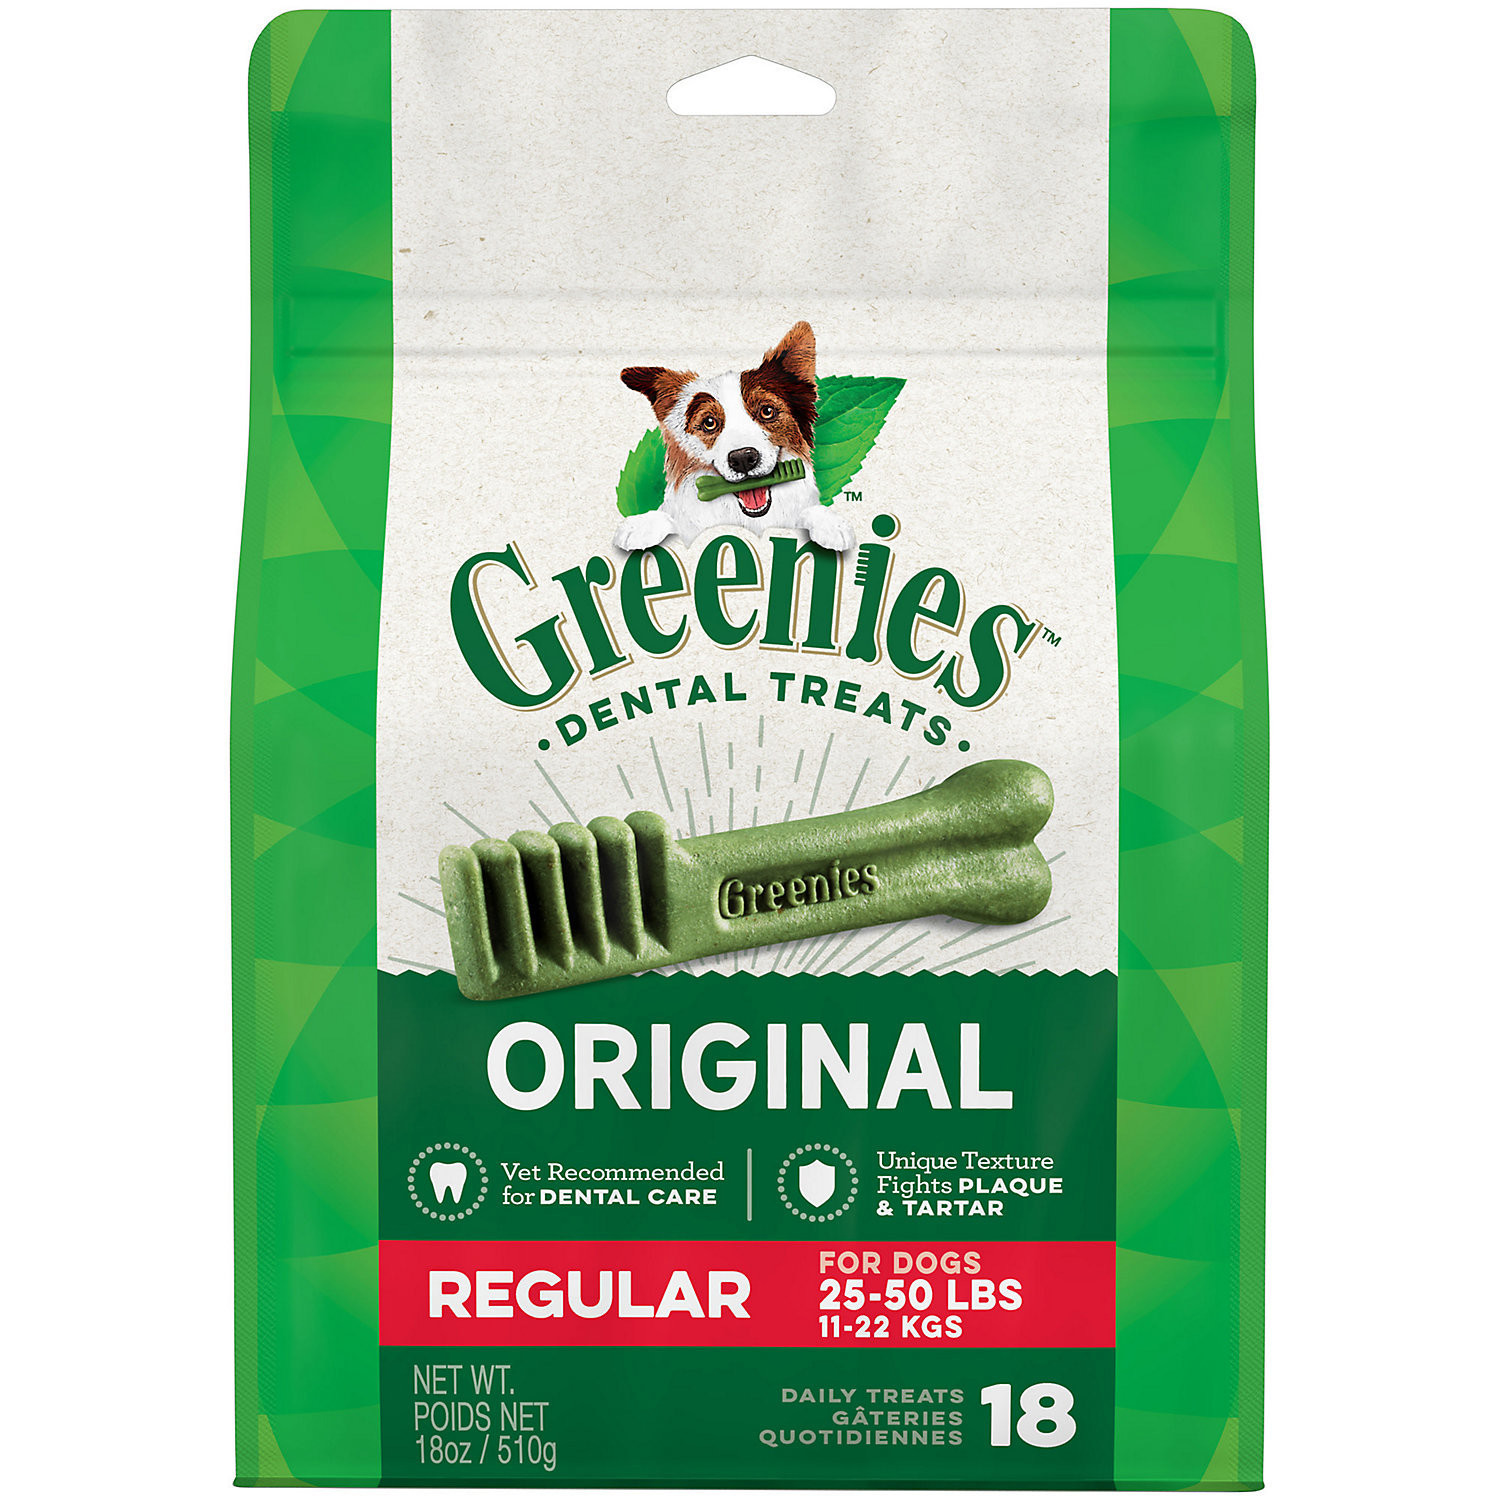 Greenies Dental Treats Regular Size (18 oz.; Pack of 18 chews; For Pets 25-50 lb (3/19) (T.A10/DT)